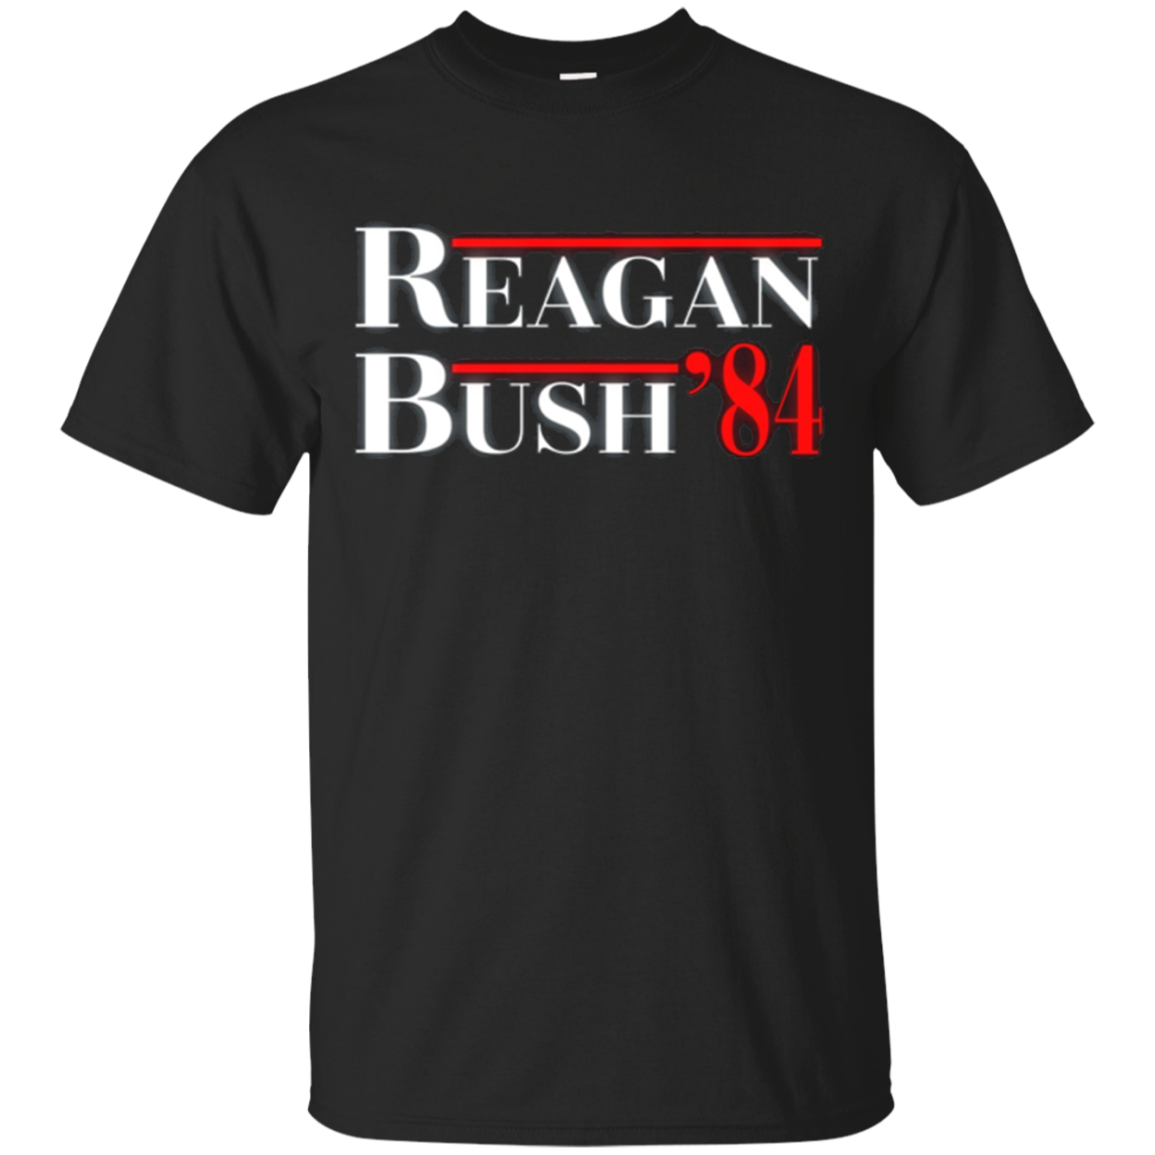 Reagan Bush 84 Ticket Conservative Politics T Shirt Right